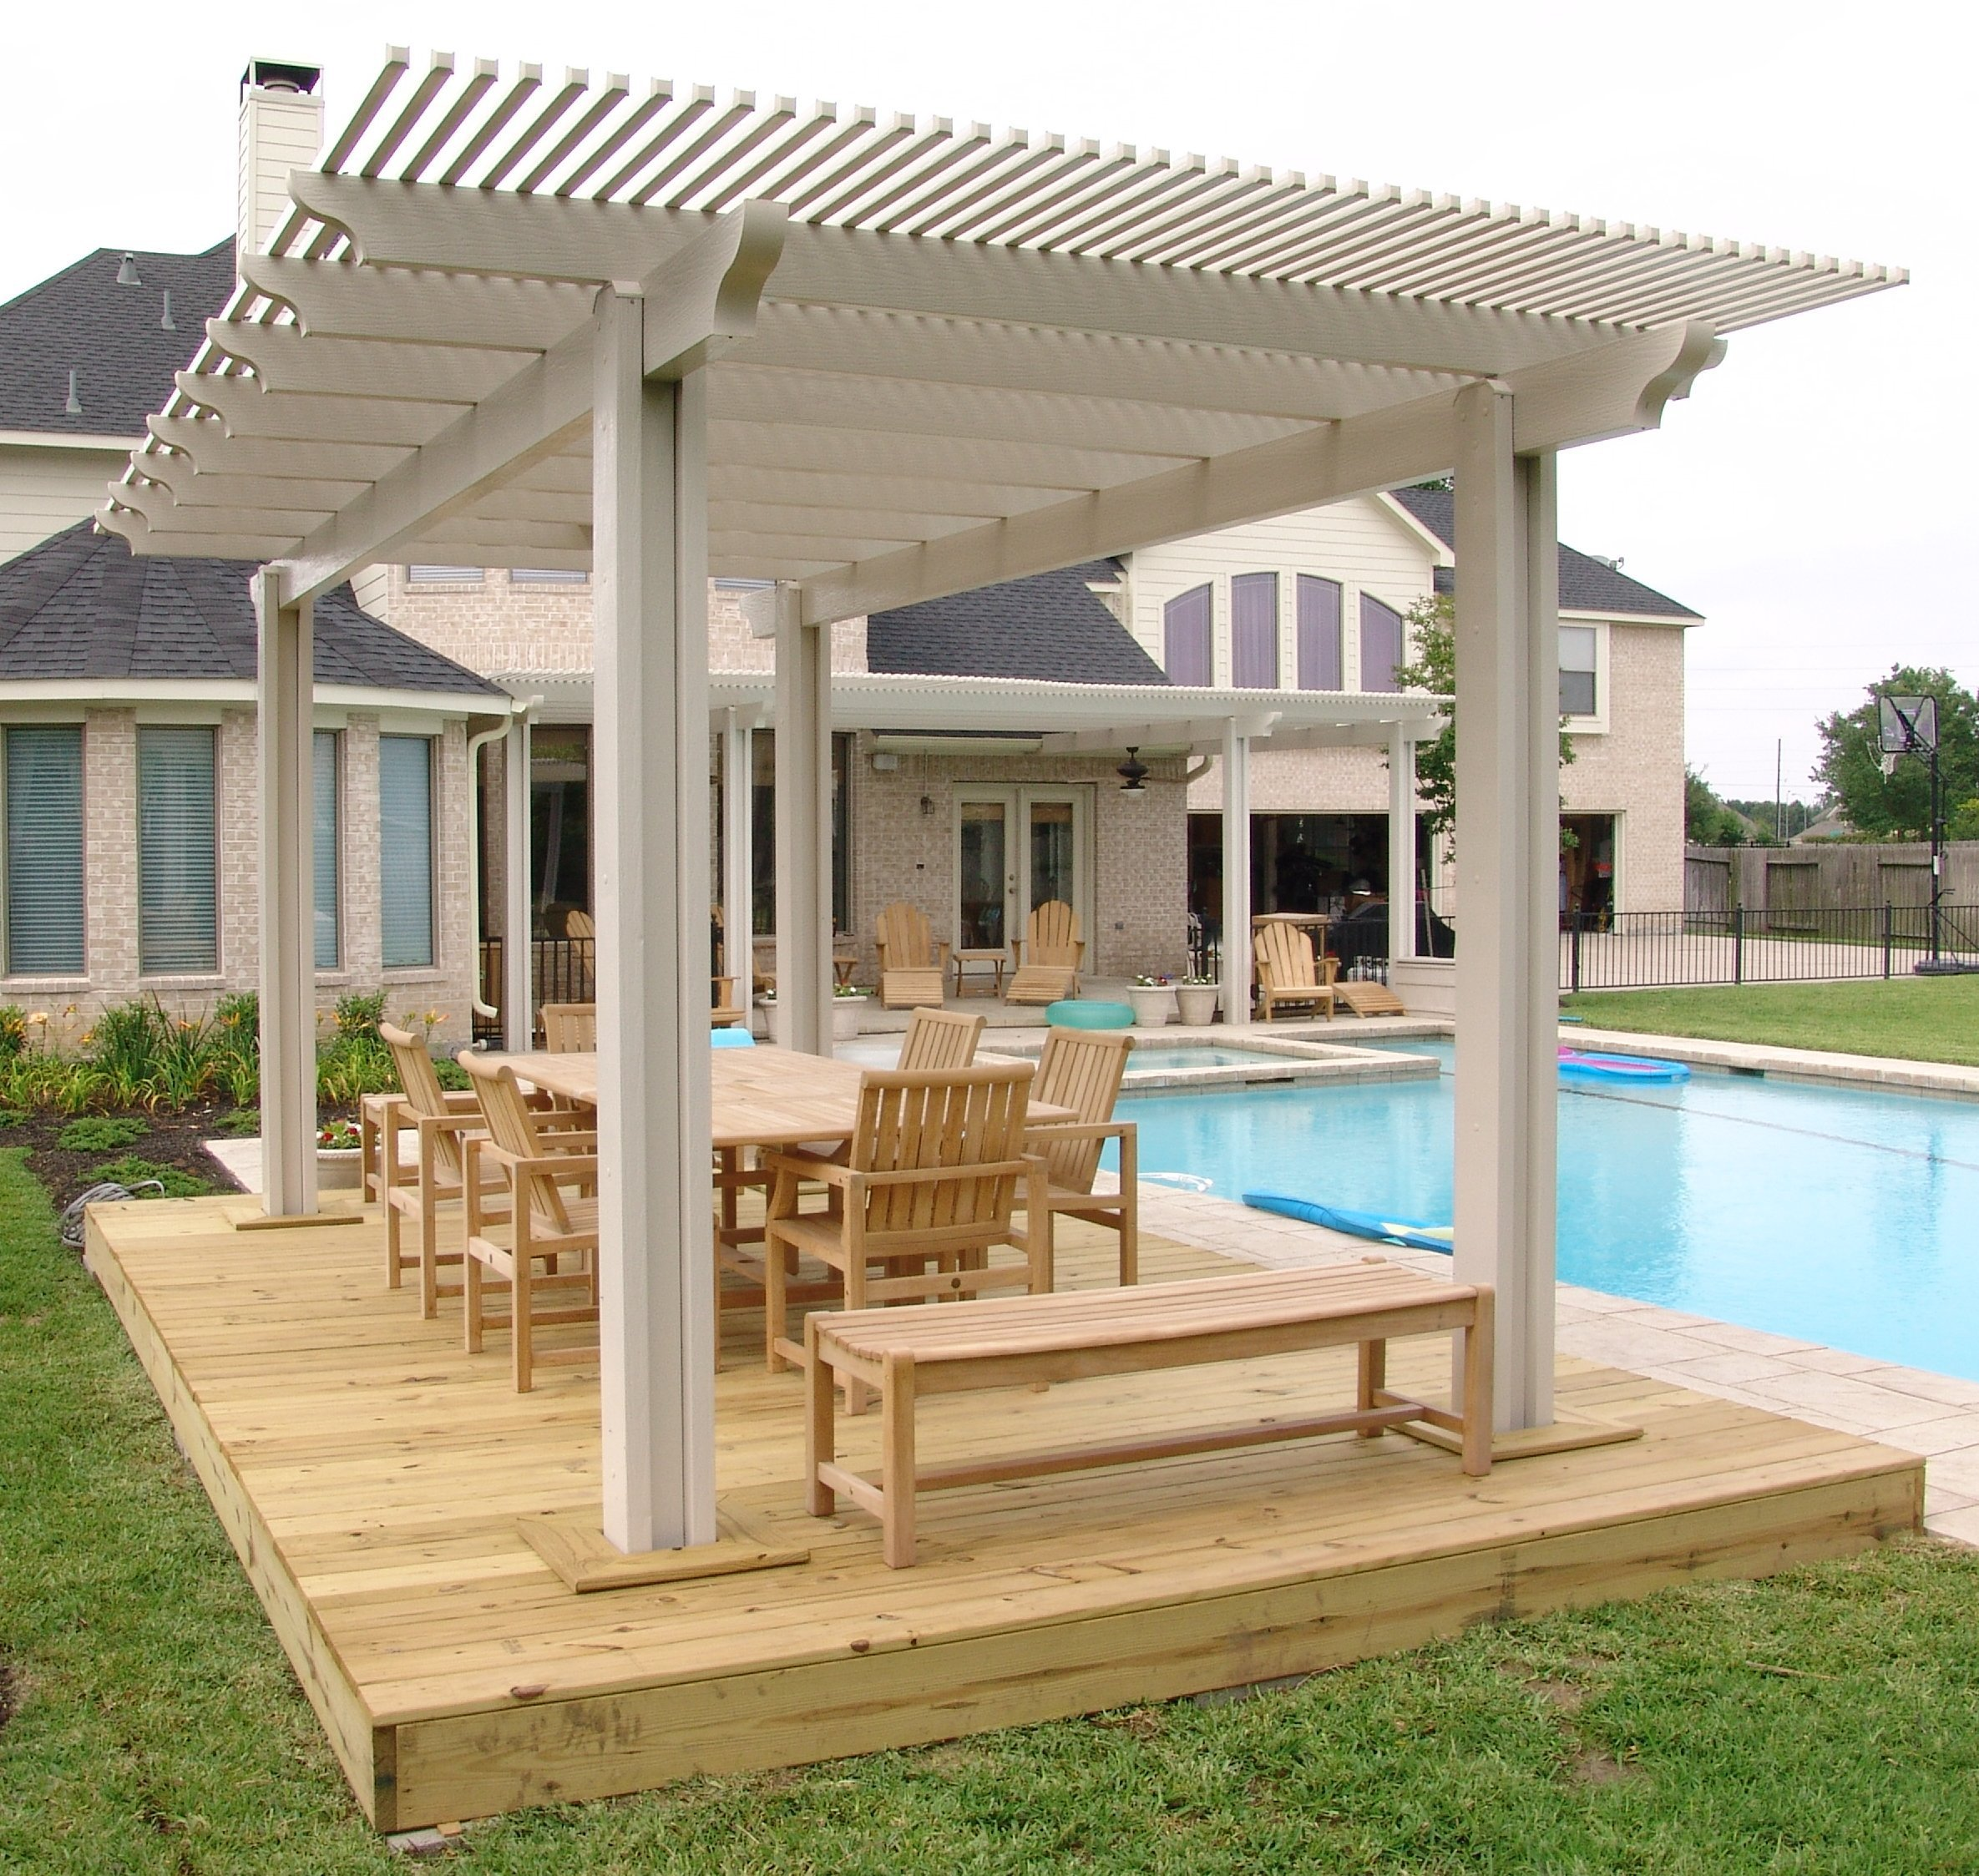 Wood Patio Covers in Texas on Patio Covers Ideas  id=85701